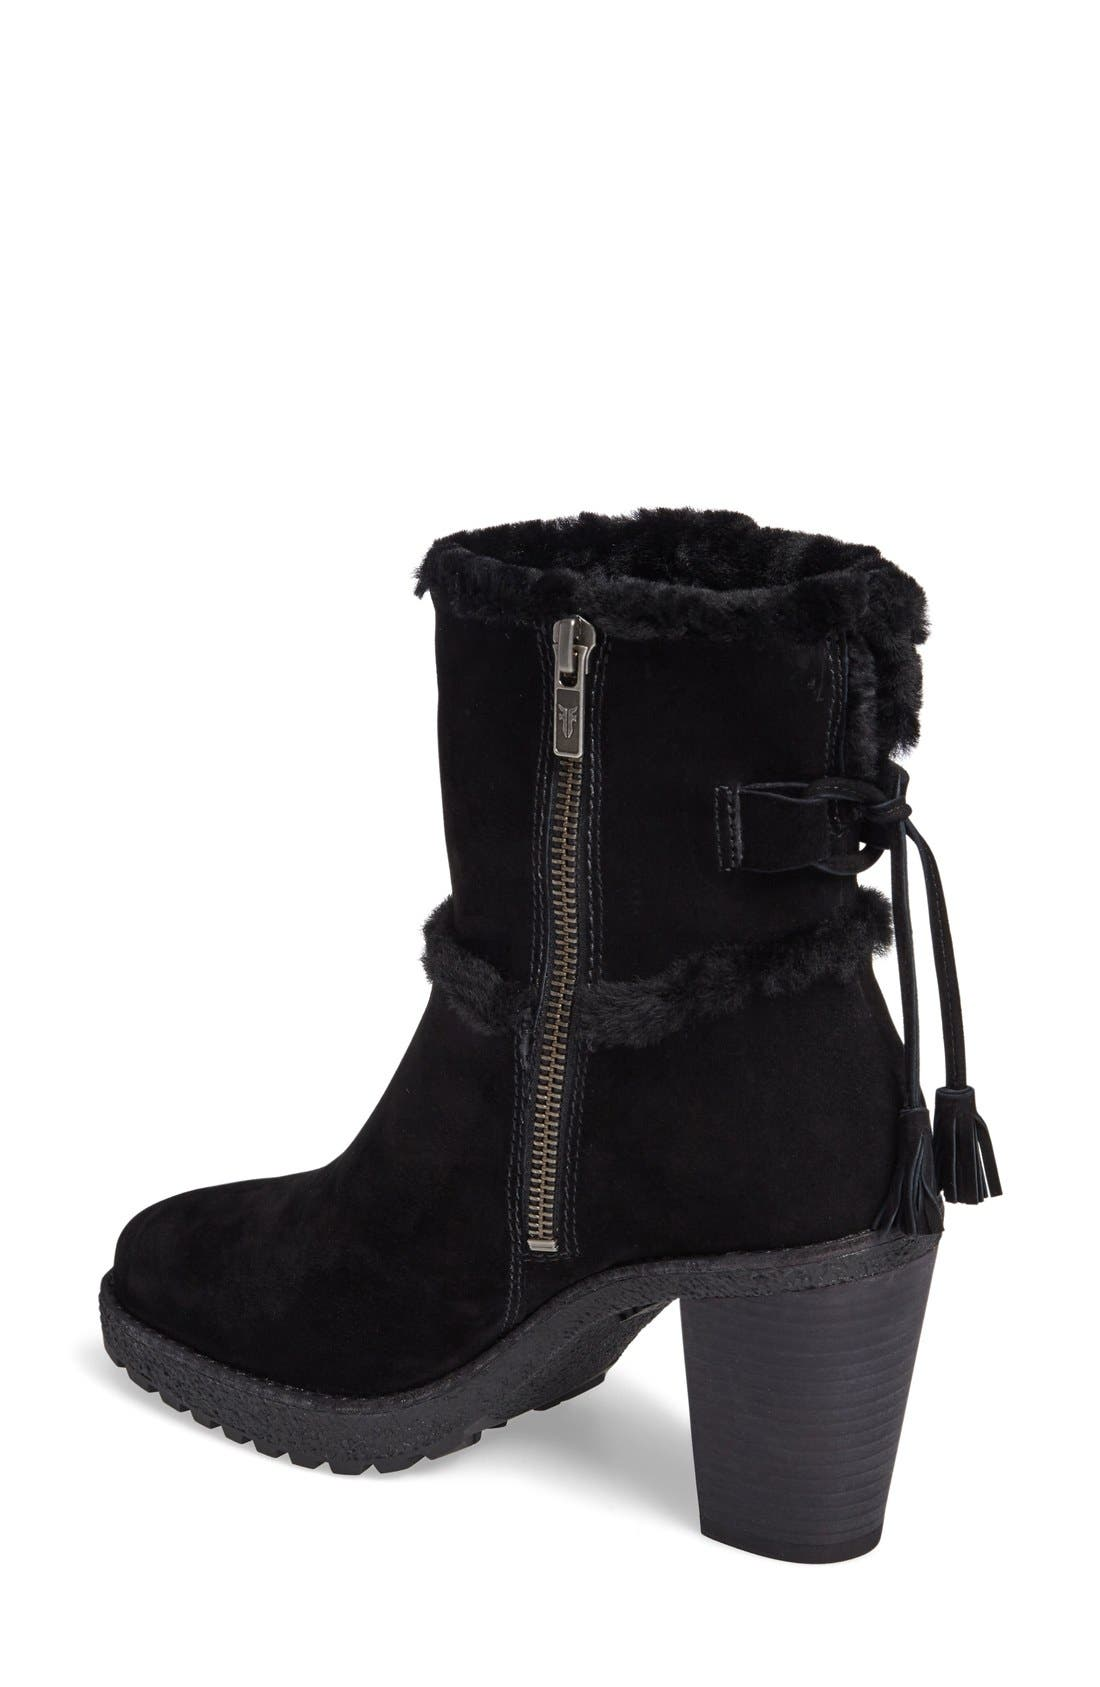 Jen Genuine Shearling Lined Water Resistant Boot,                             Alternate thumbnail 2, color,                             Black